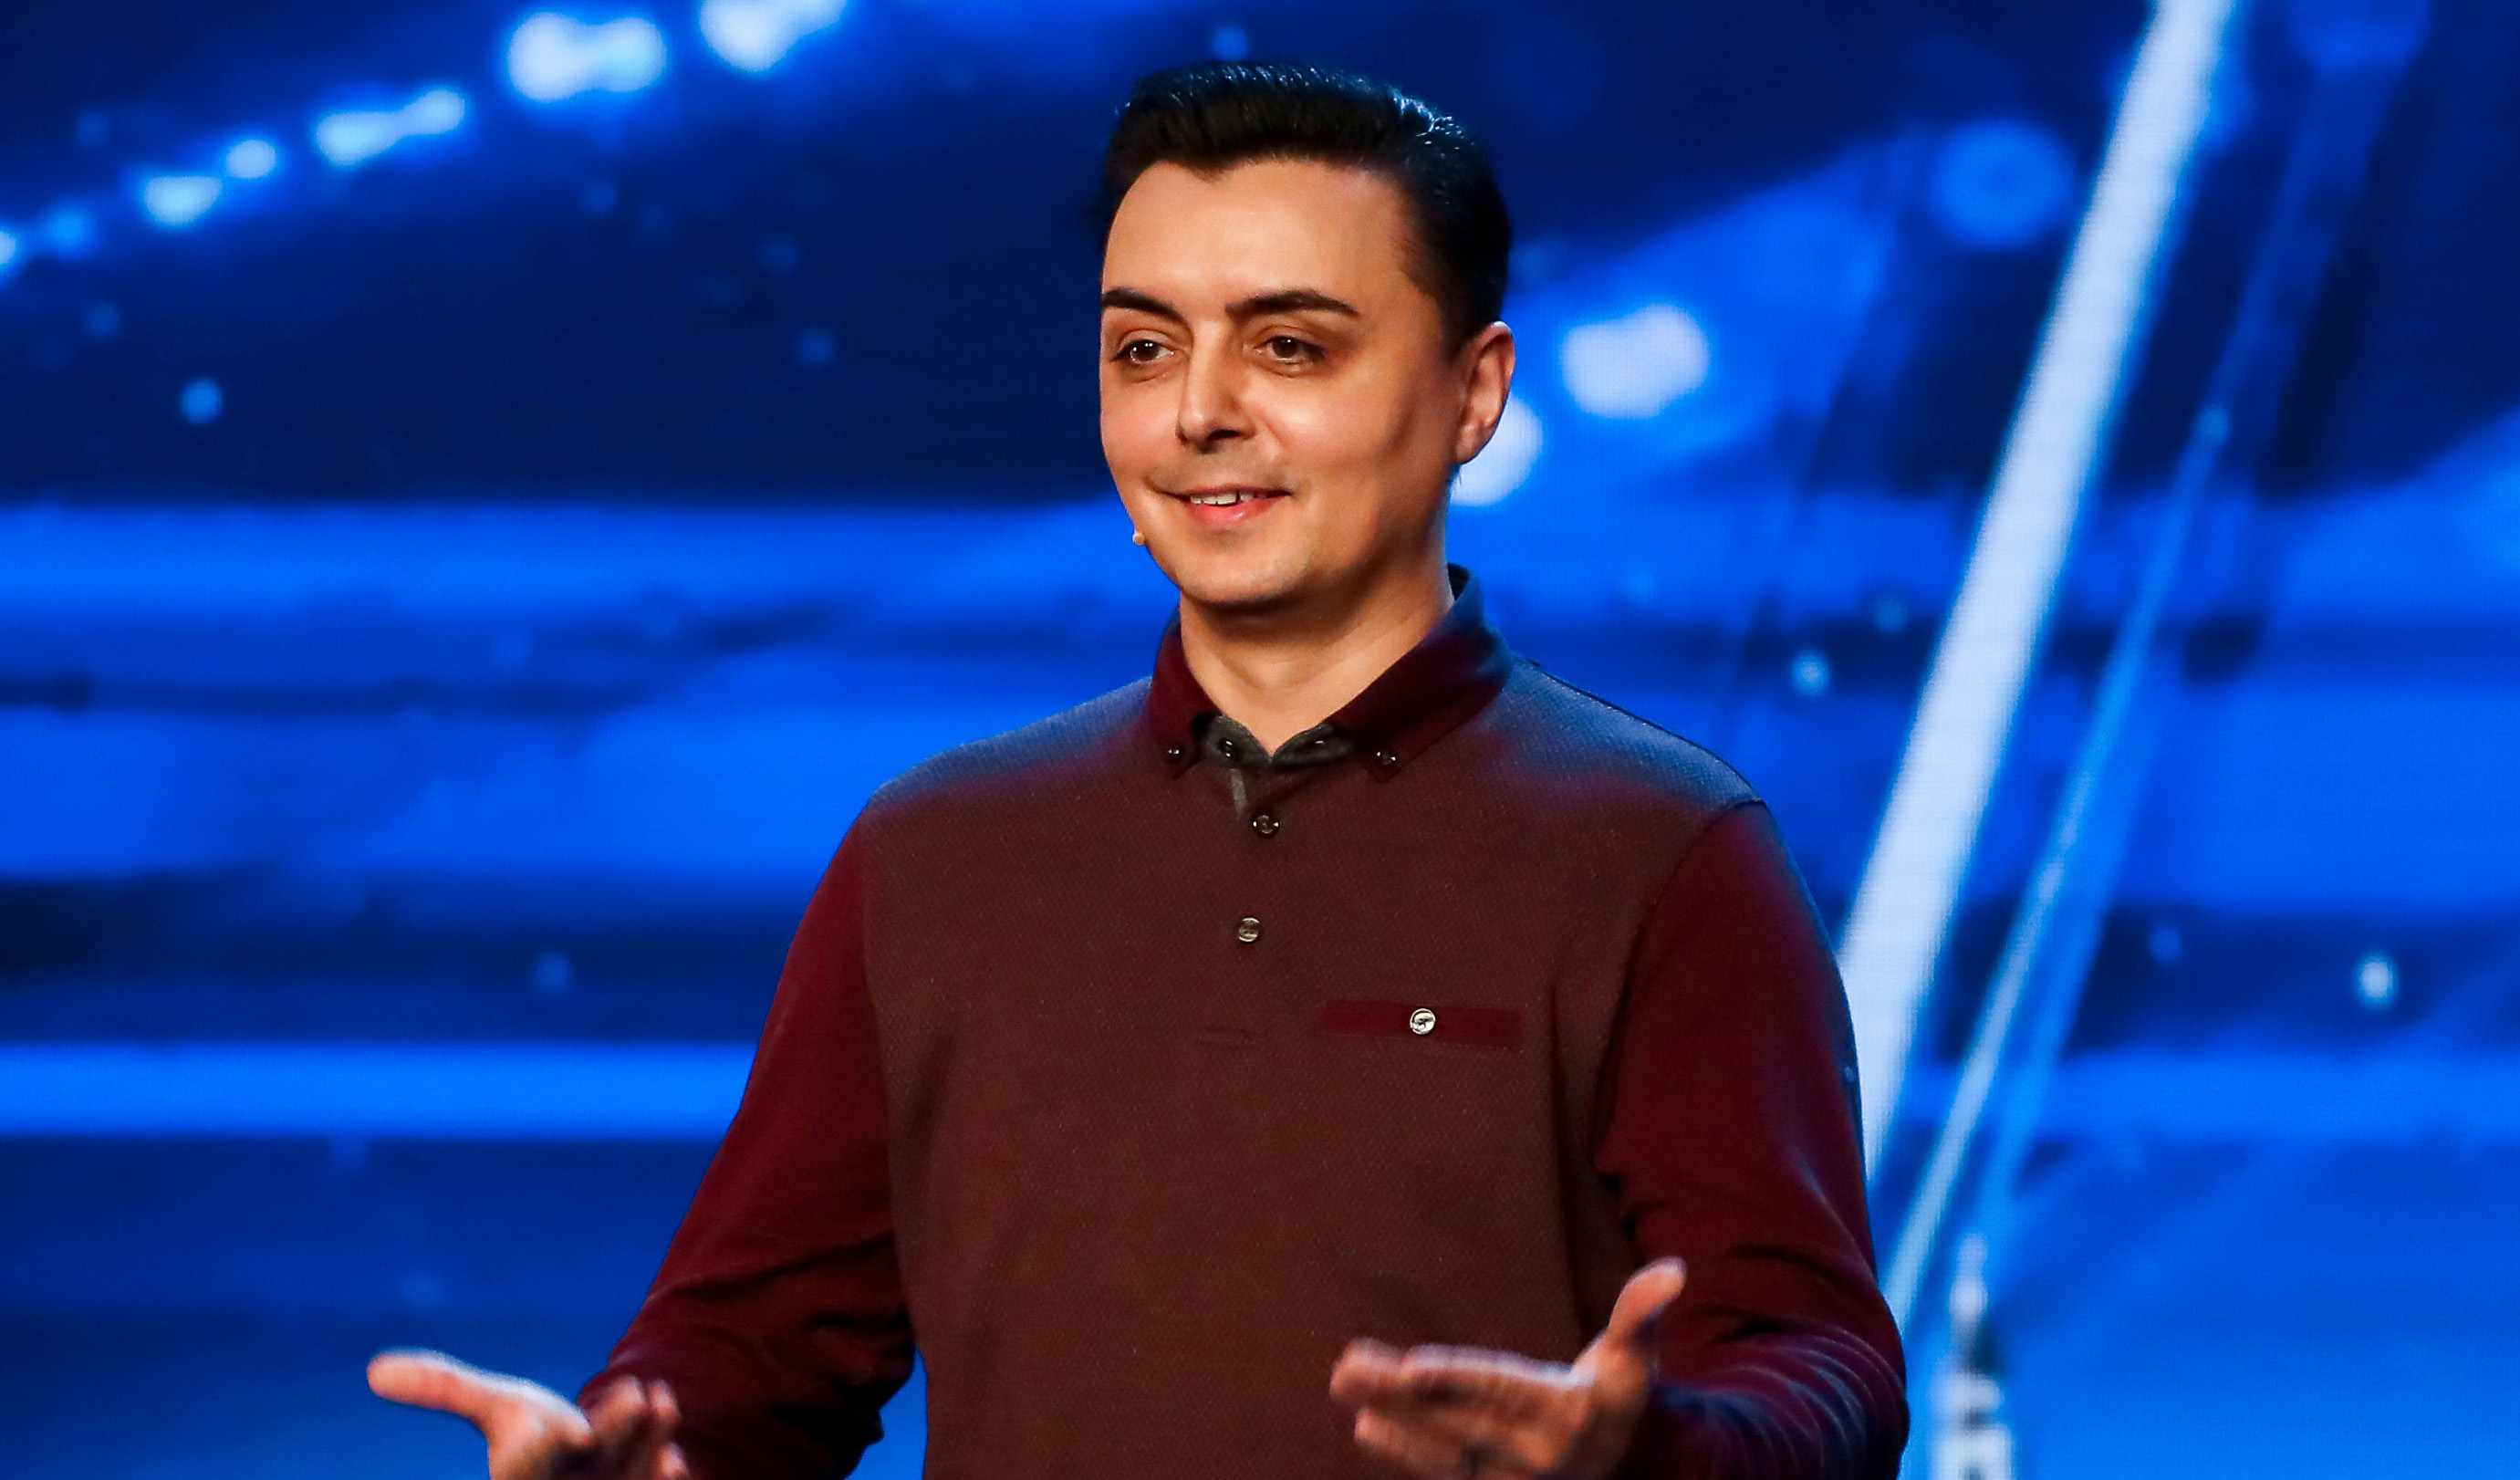 Marc Spelmann on Britain's Got Talent